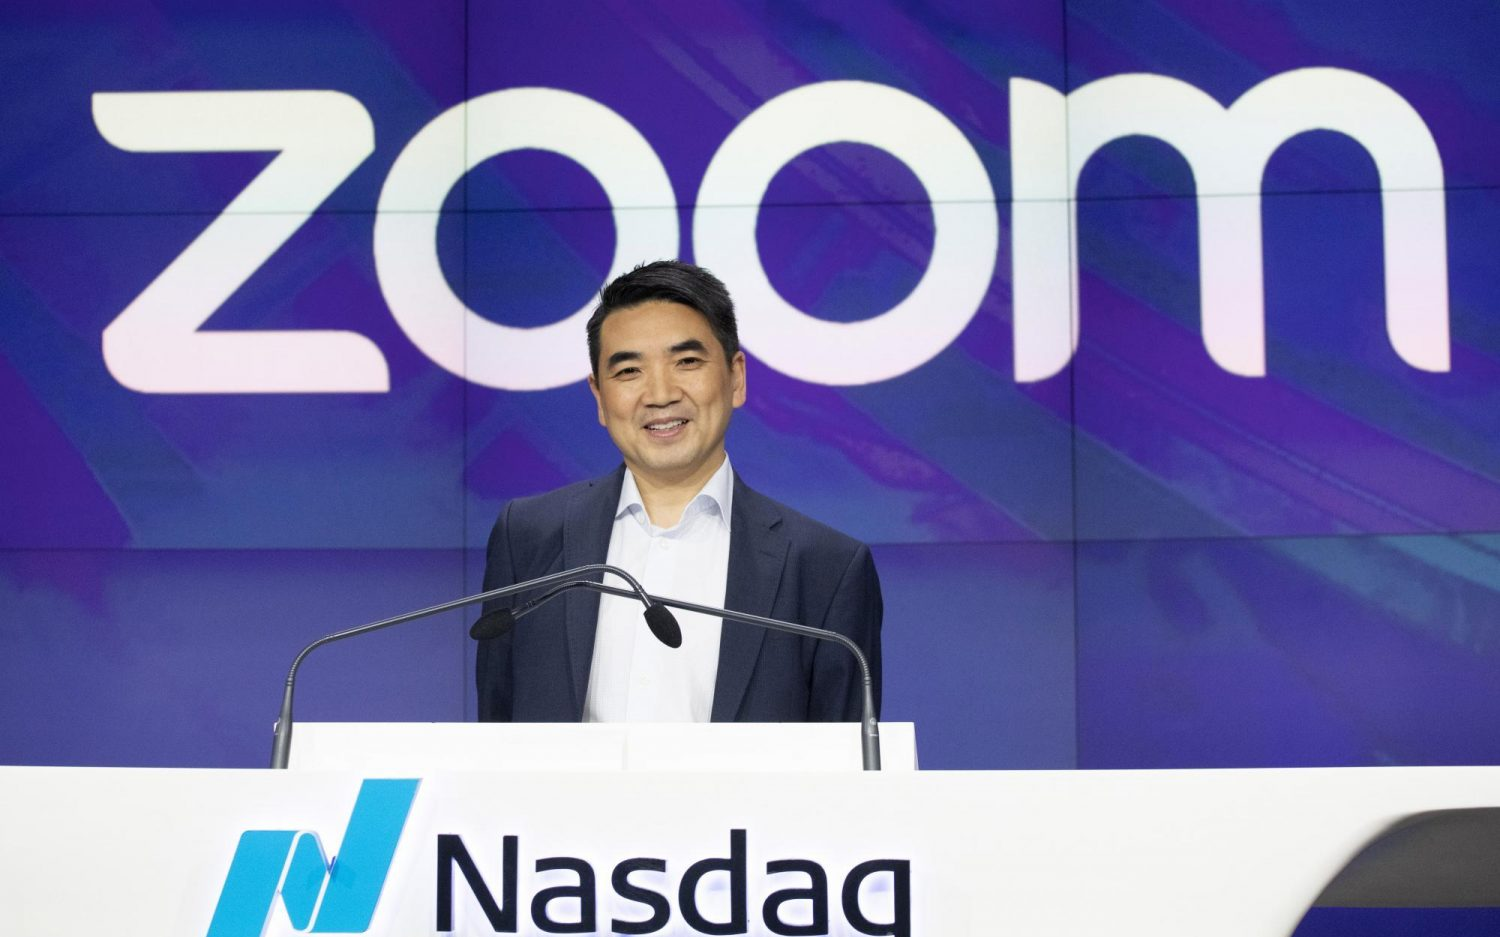 Zoom suspends Chinese human rights activist's account